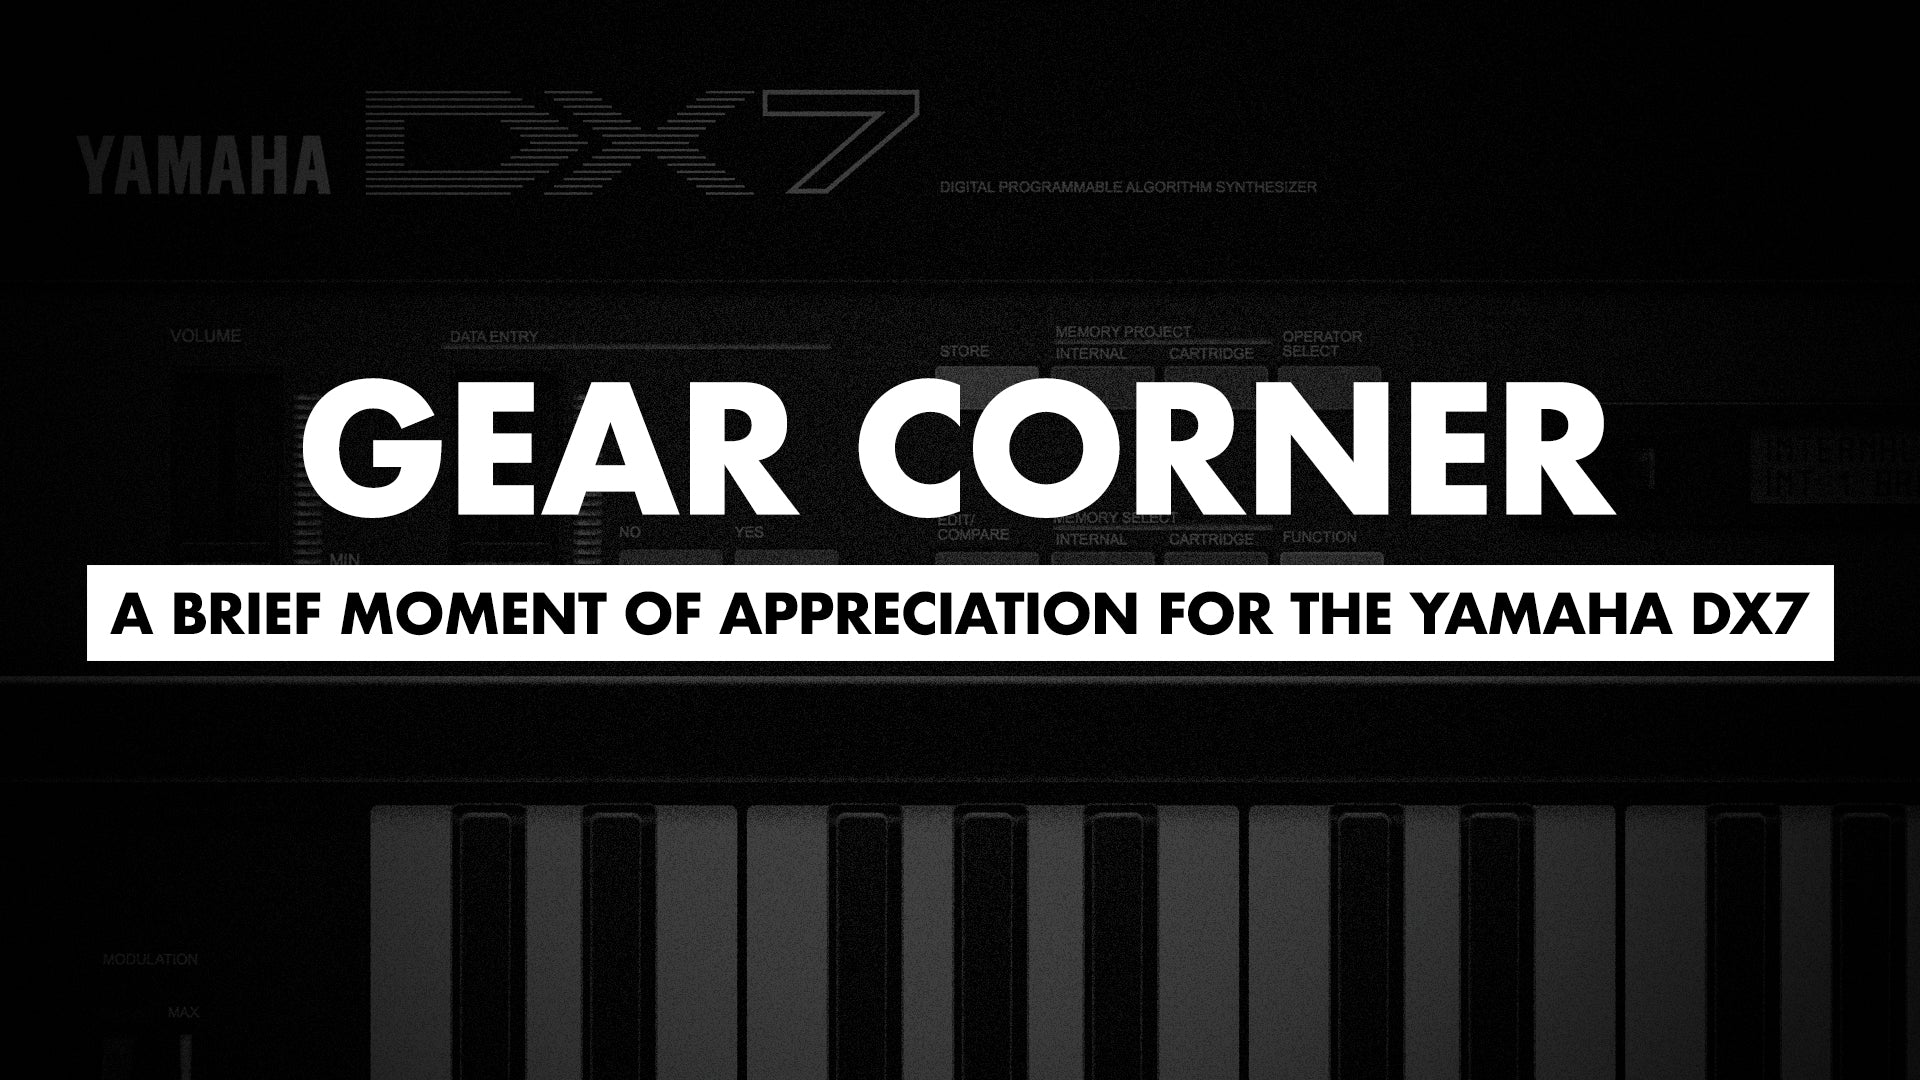 Gear Corner: A Brief Moment of Appreciation for the Yamaha